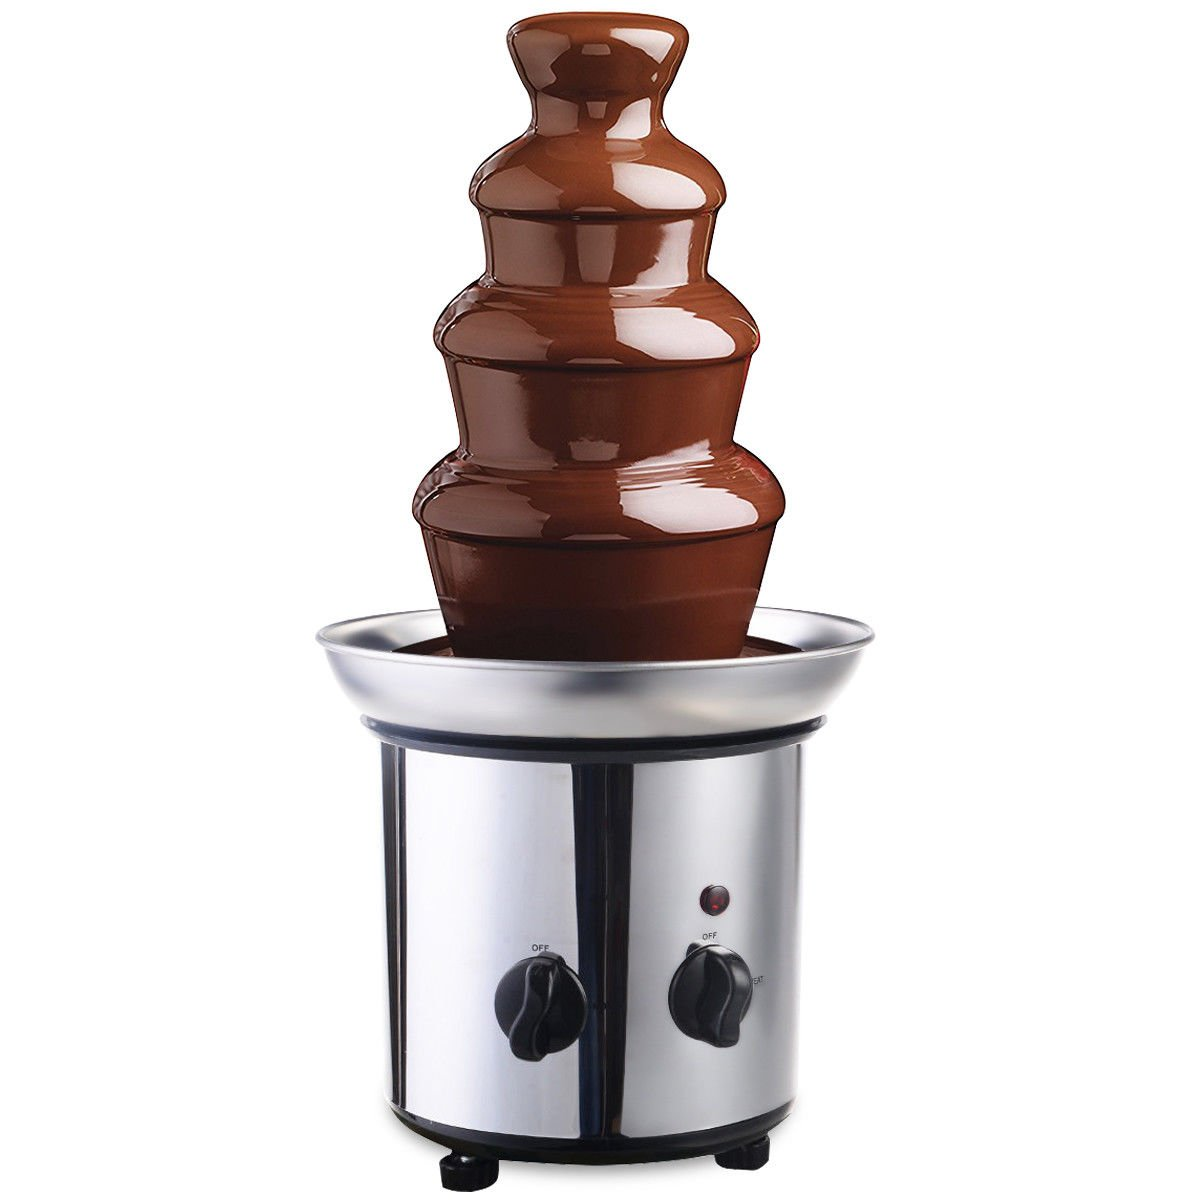 Commercial Luxury Hot Electric Chocolate Cheese Fondue Fountain 4 Tiers Design Adjustable Stanza Temperature Stable Heating Stainless Steel Material Parties Wedding Ceremony Restaurant